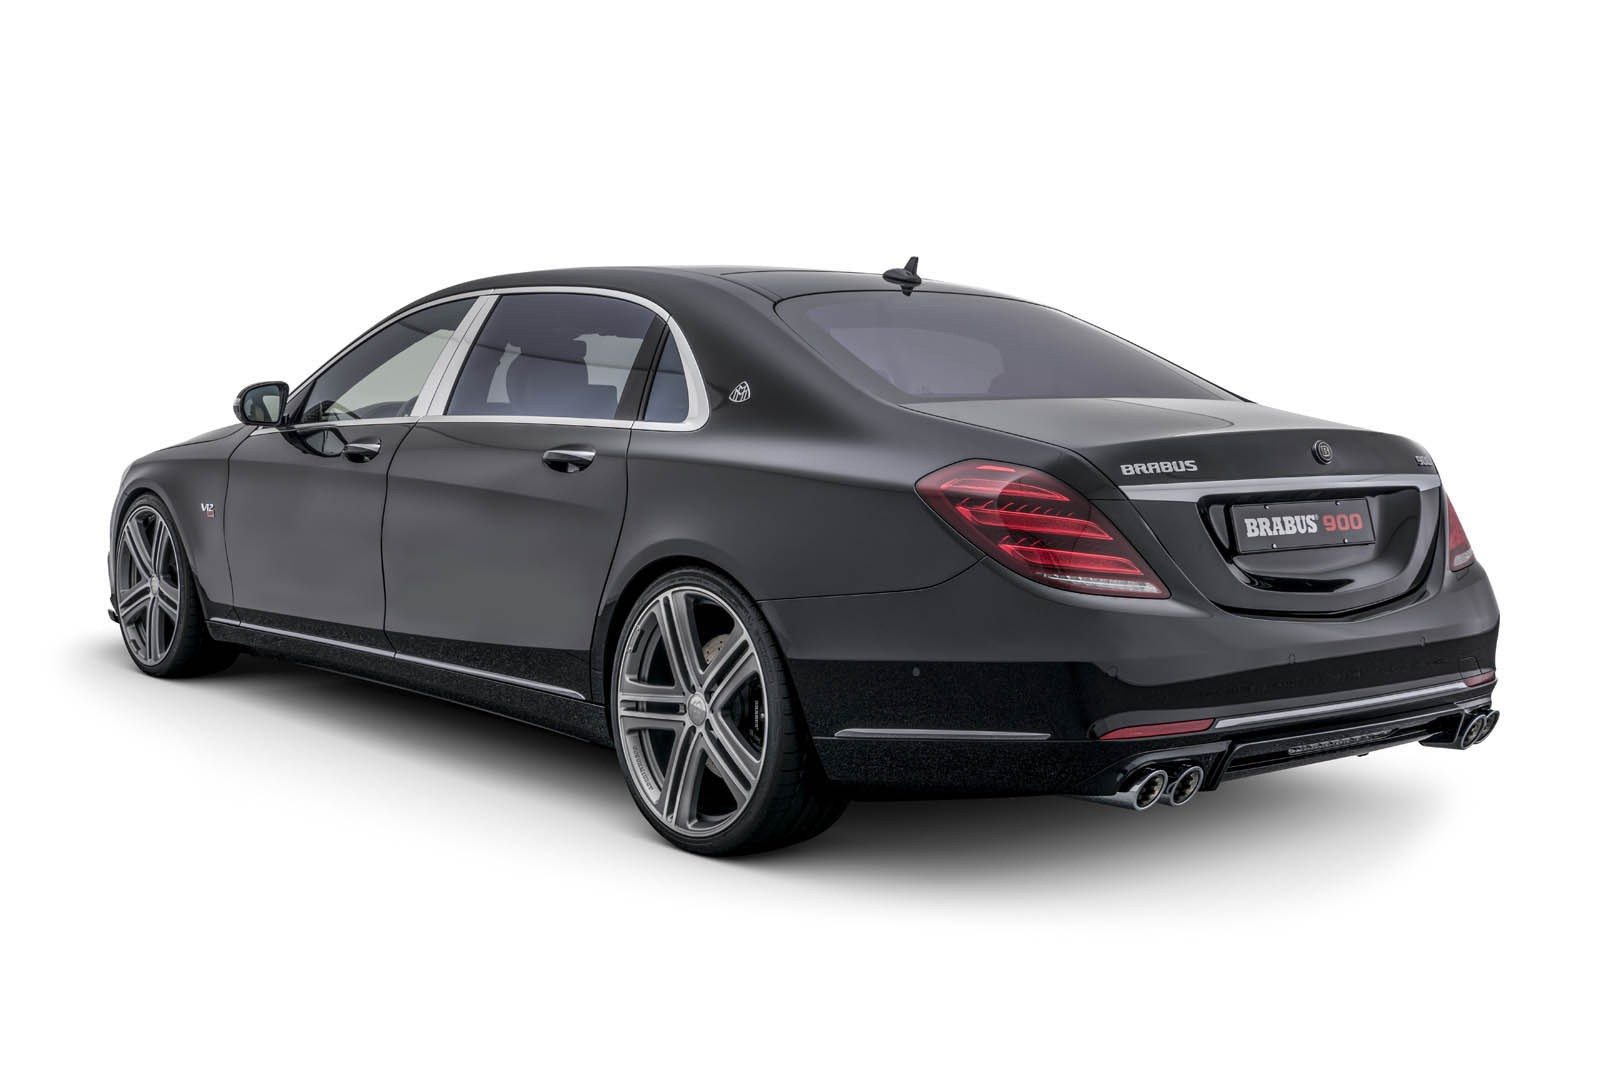 2015 mercedes benz s class coupe hd wallpapers if rodin was a petrolhead autoevolution. Black Bedroom Furniture Sets. Home Design Ideas